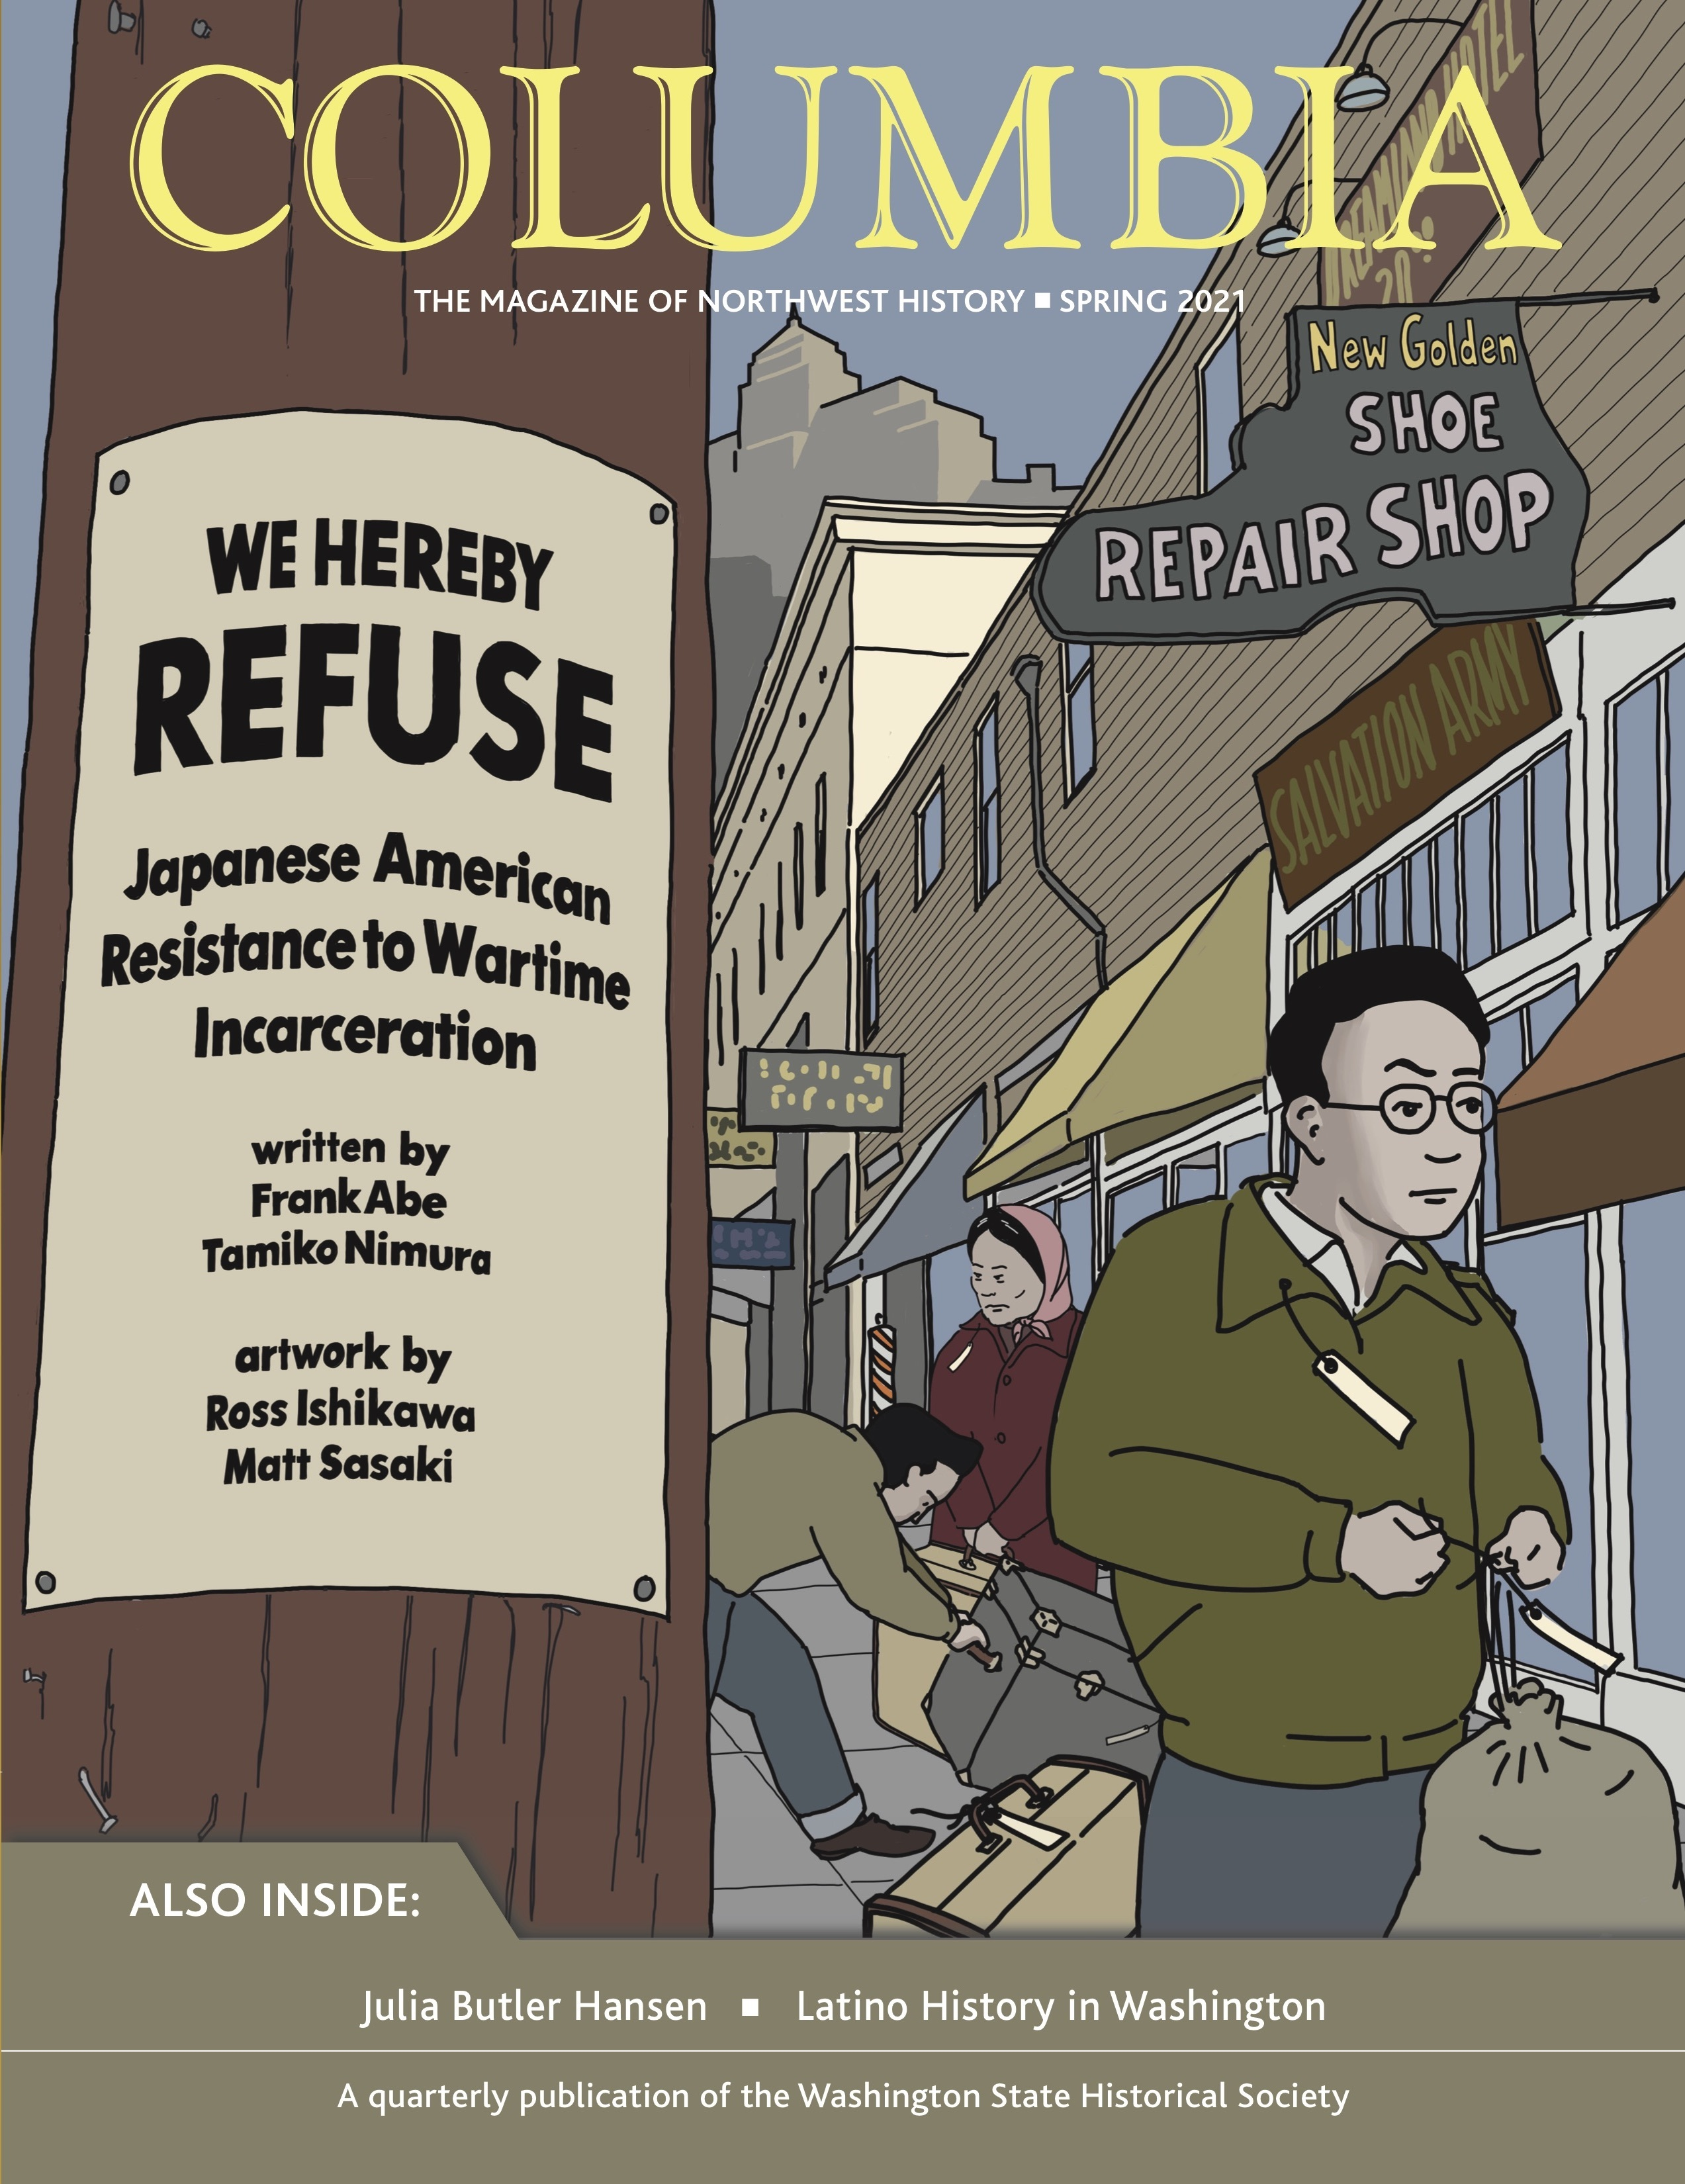 """Cover of """"Columbia Magazine"""" illustrated with a sign on a pole reading """"We hereby refuse - Japanese American Resistance to Wartime Incarceration - written by Frank Abe, Tomiko Nimura - artwork by Ross Ishikawa, Matt Sasaki"""""""